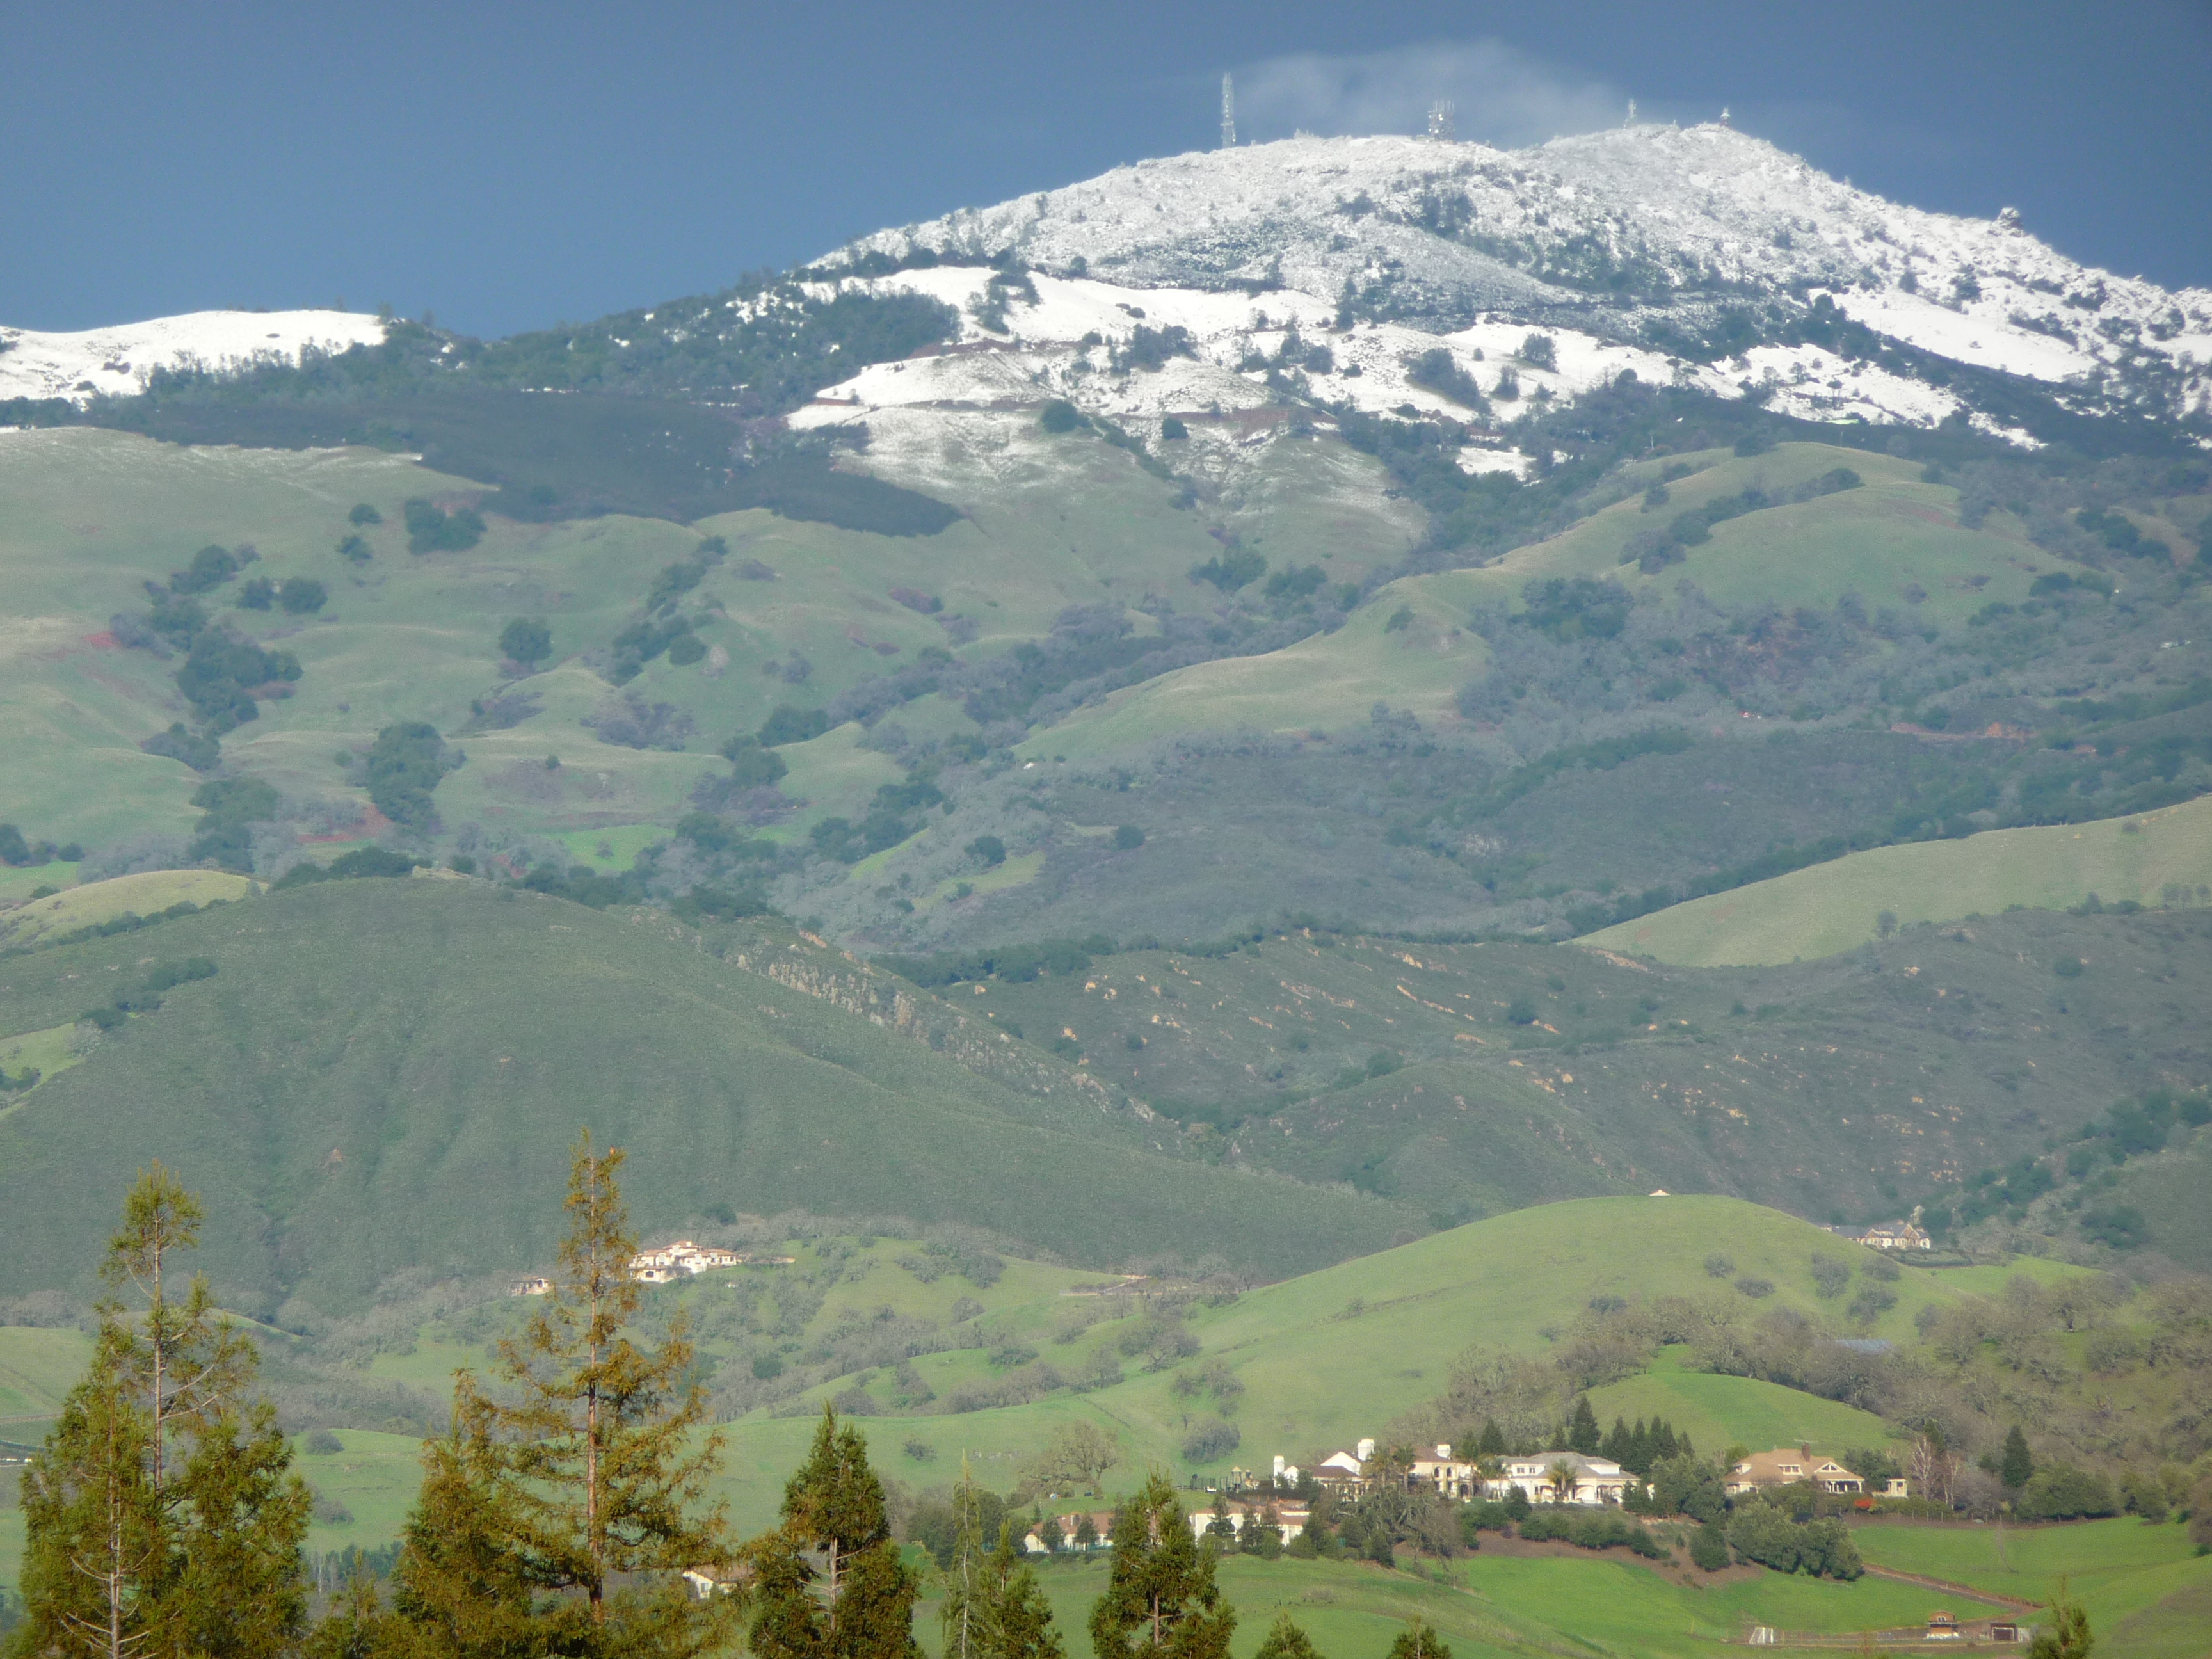 View of Summit from Danville